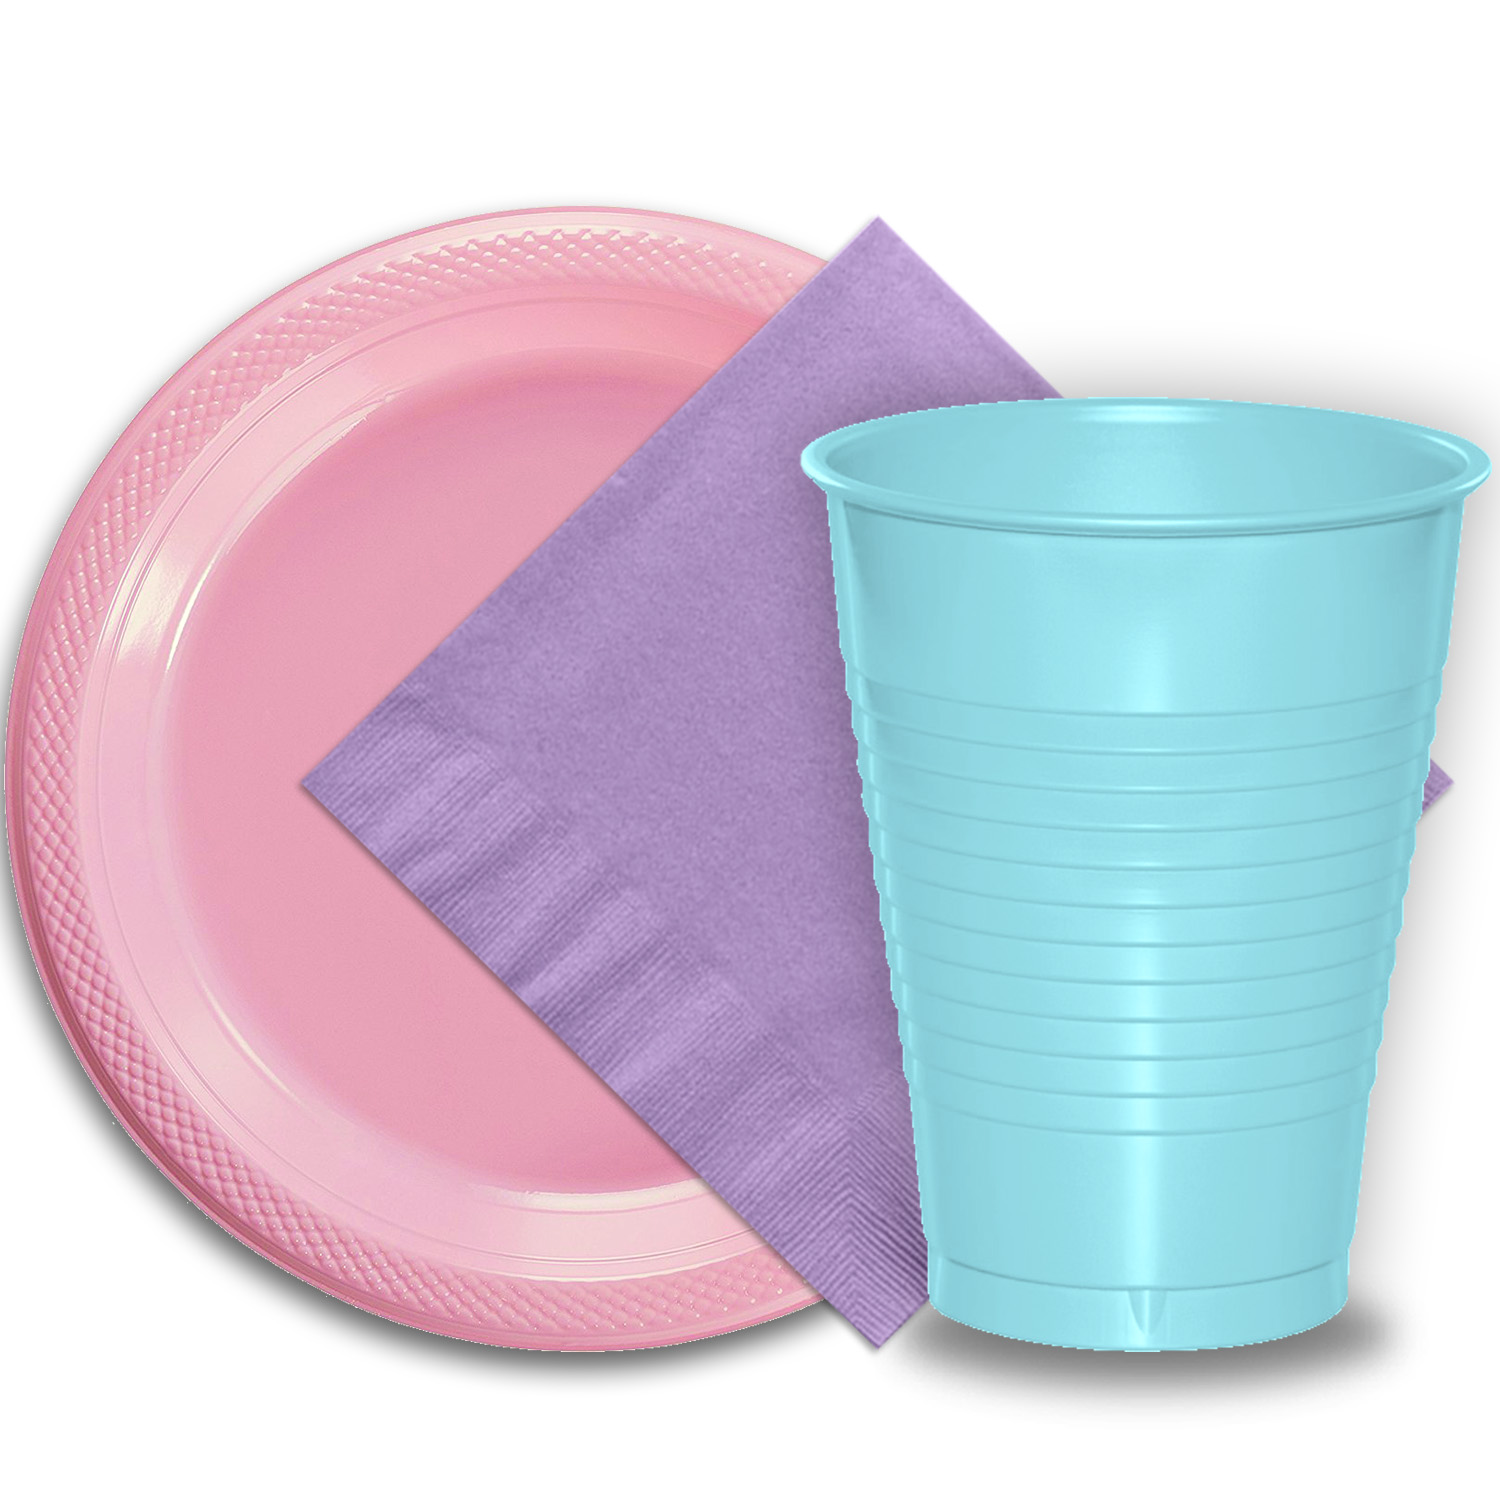 "50 Pink Plastic Plates (9""), 50 Light Blue Plastic Cups (12 oz.), and 50 Lavender Paper Napkins, Dazzelling Colored Disposable Party Supplies Tableware Set for Fifty Guests."